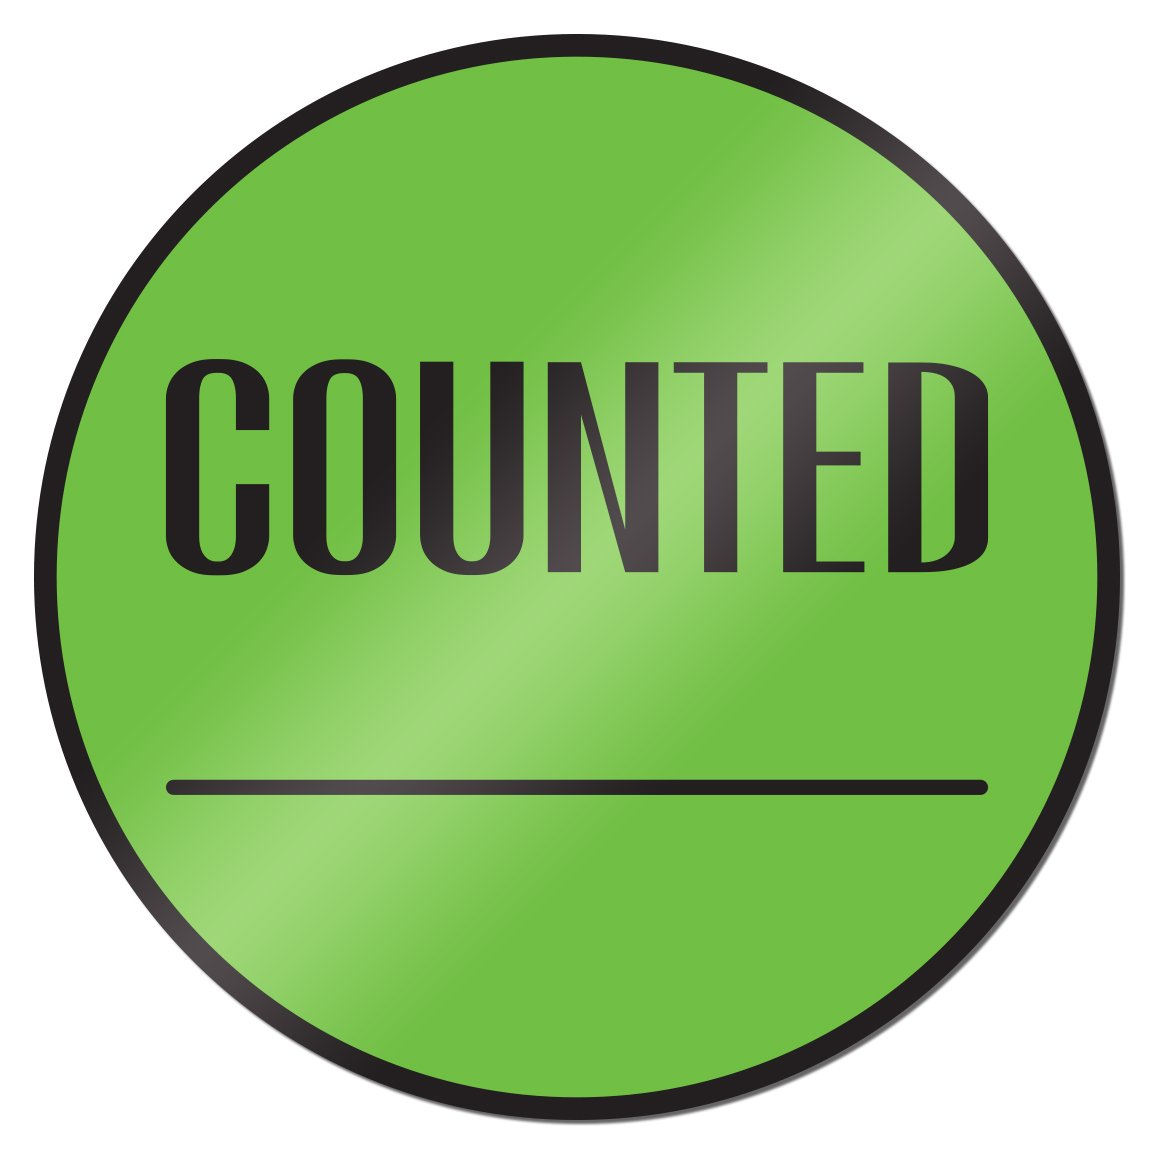 Counted 2 inch Round Inventory Control Labels Stickers Green 10 Rolls